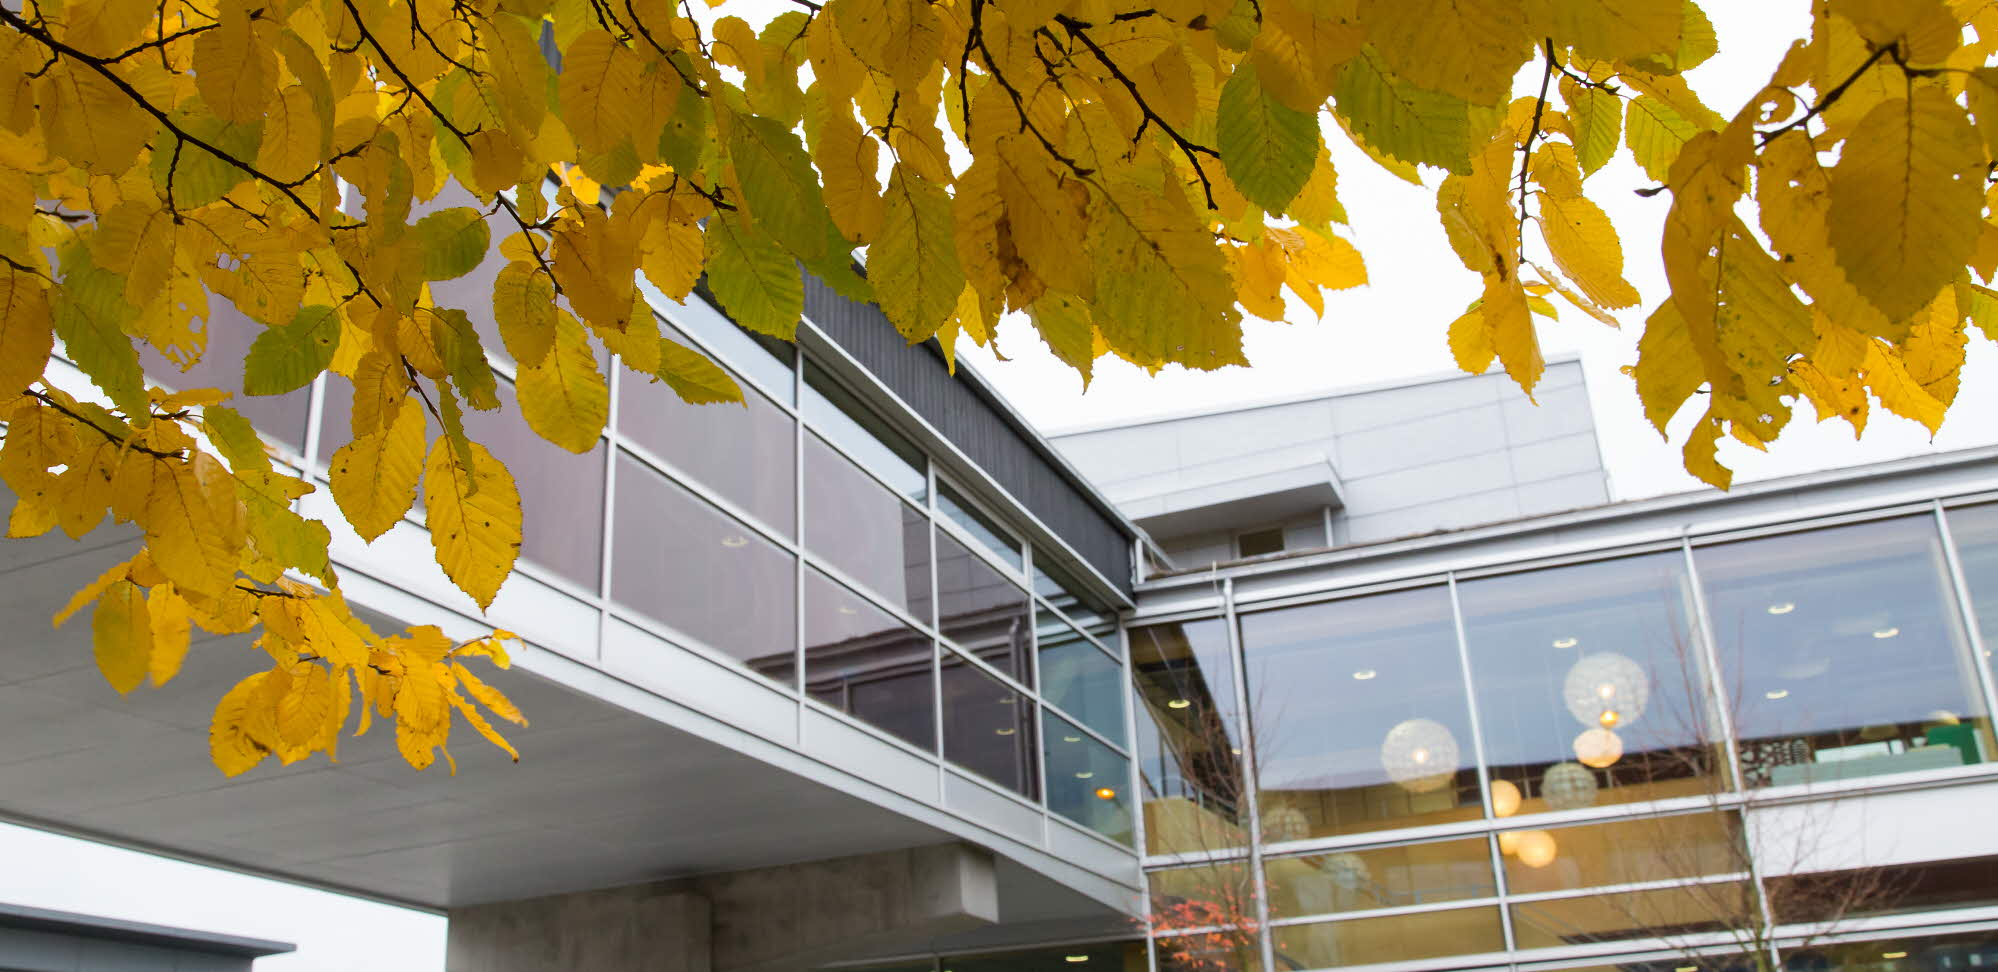 University building and autumn leaves